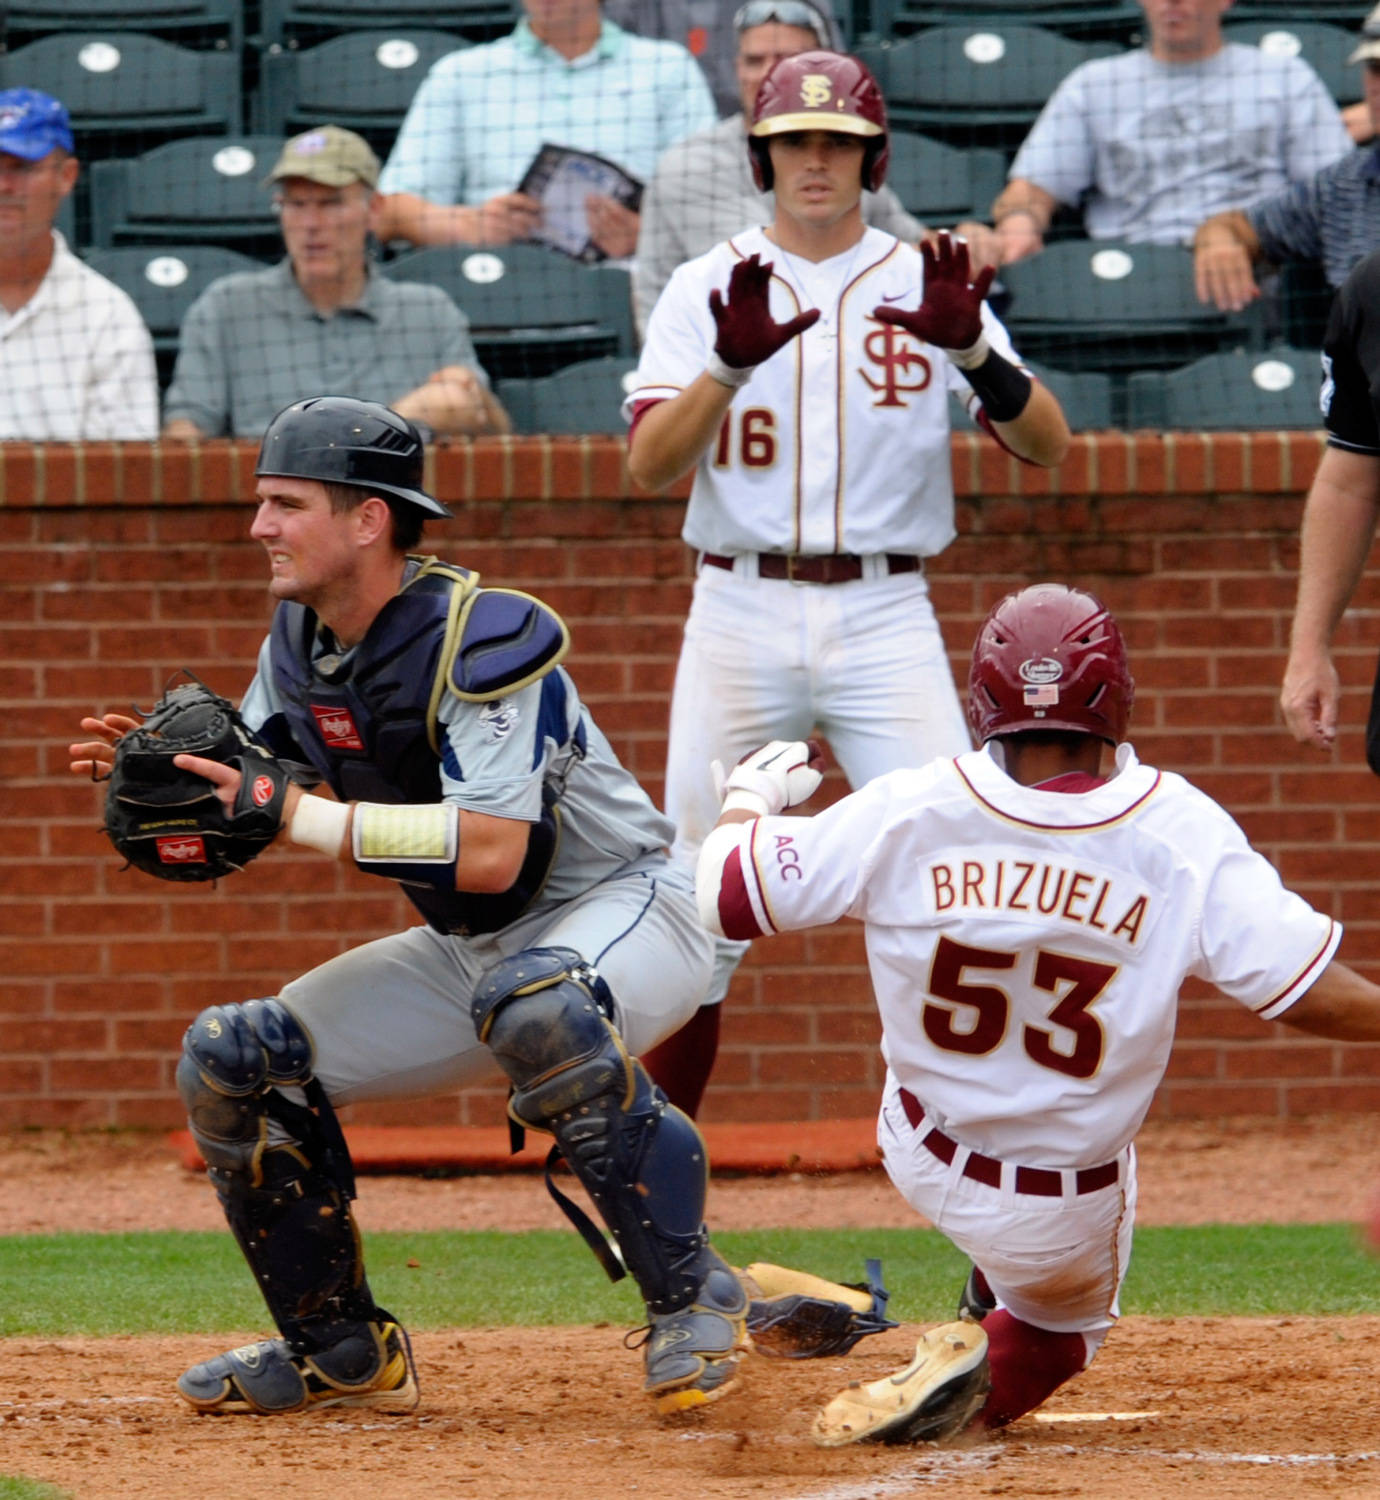 Florida State's Jose Brizuela (53) slides into homebase as Georgia Tech's A.J. Murray (9) waits for the ball and Florida State's Jace Boyd (16) tells Brizuela to get down during the ACC Baseball Championship May 23, 2012 in Greensboro, N.C. (Photo by Sara D. Davis/theACC.com)